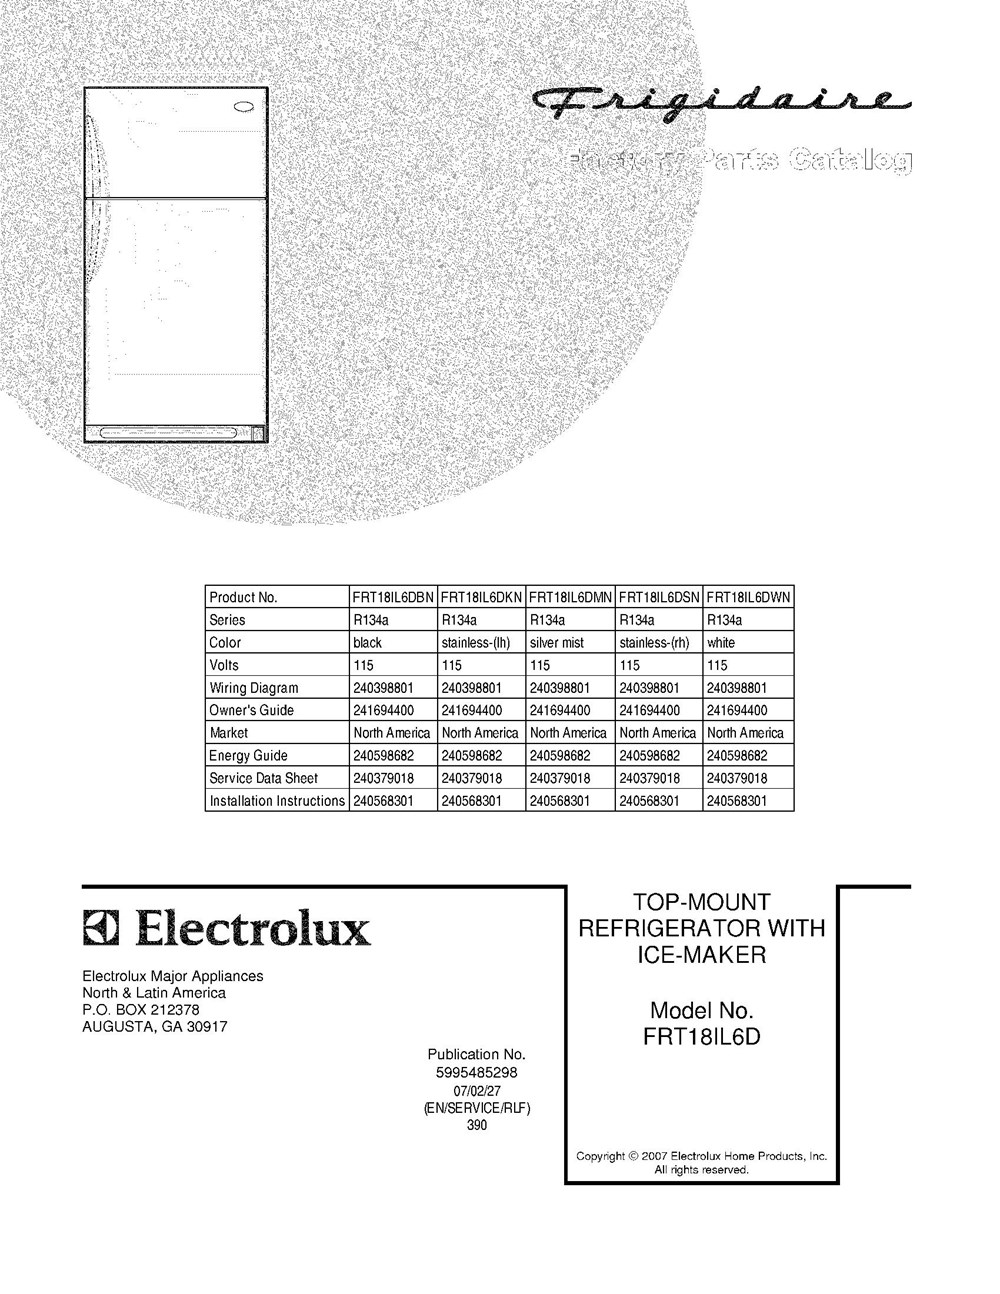 Frt18il6dbn Frigidaire Company Appliance Parts Electrolux Refrigerator Wiring Diagram